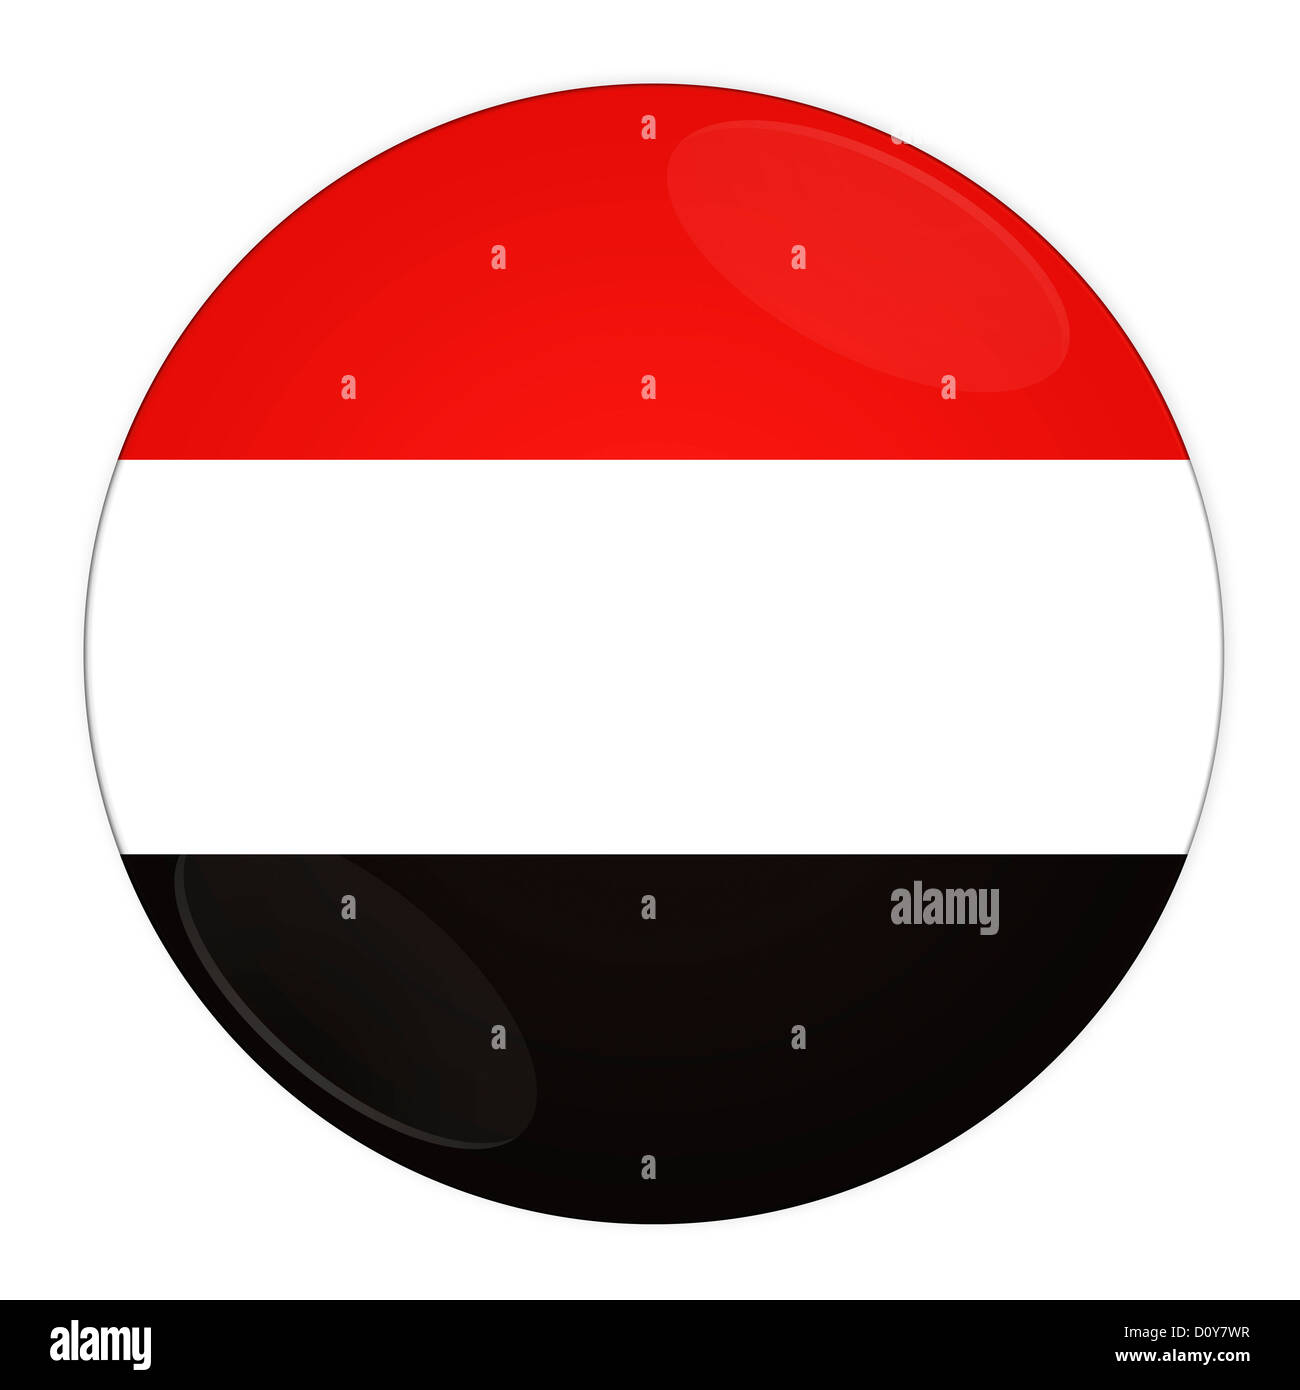 Yemen button with flag - Stock Image